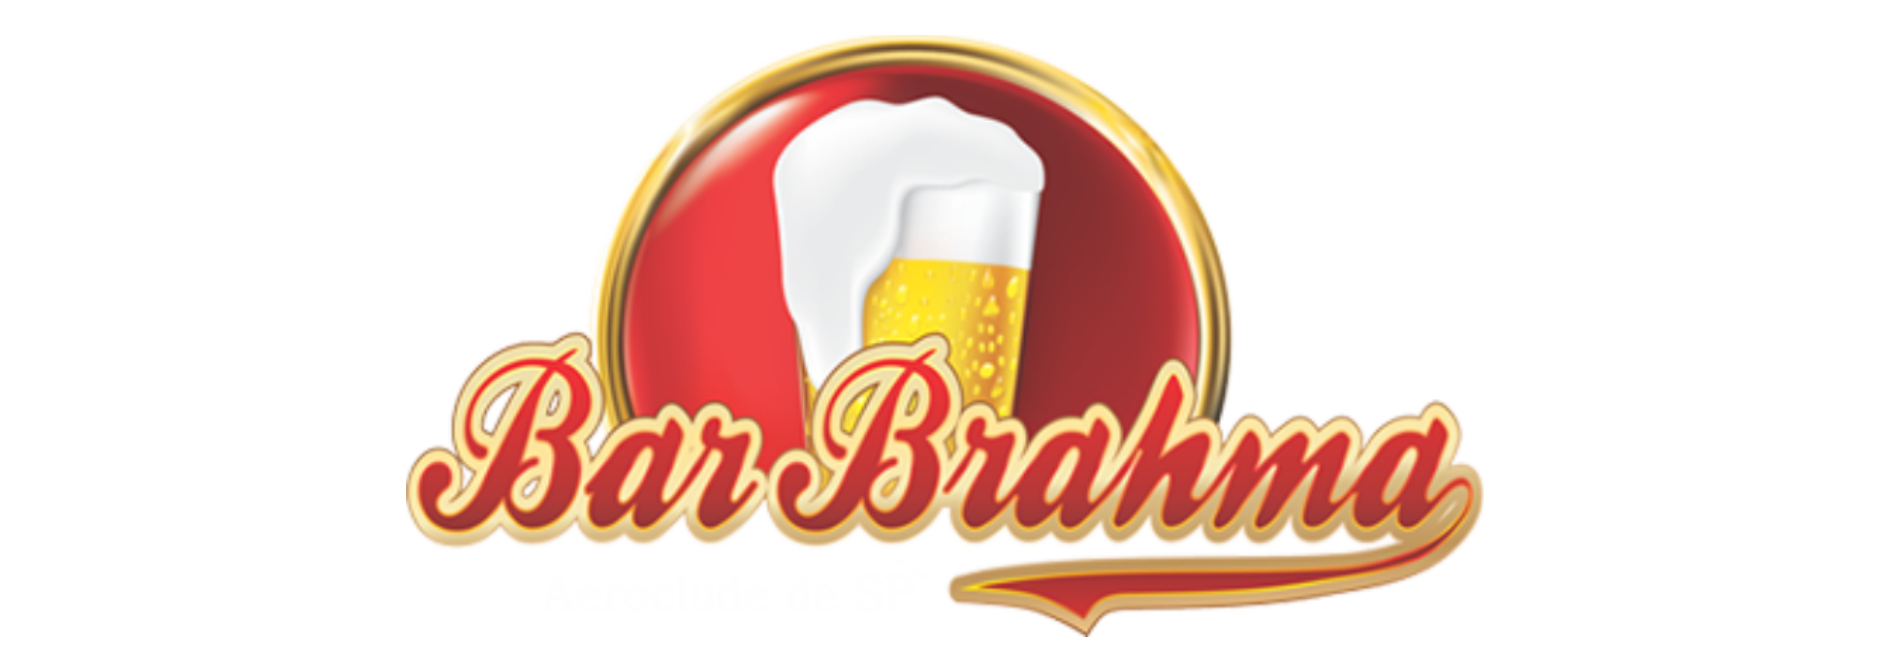 https://www.abraphe.org.br/wp-content/uploads/2019/04/bar-brahma.png